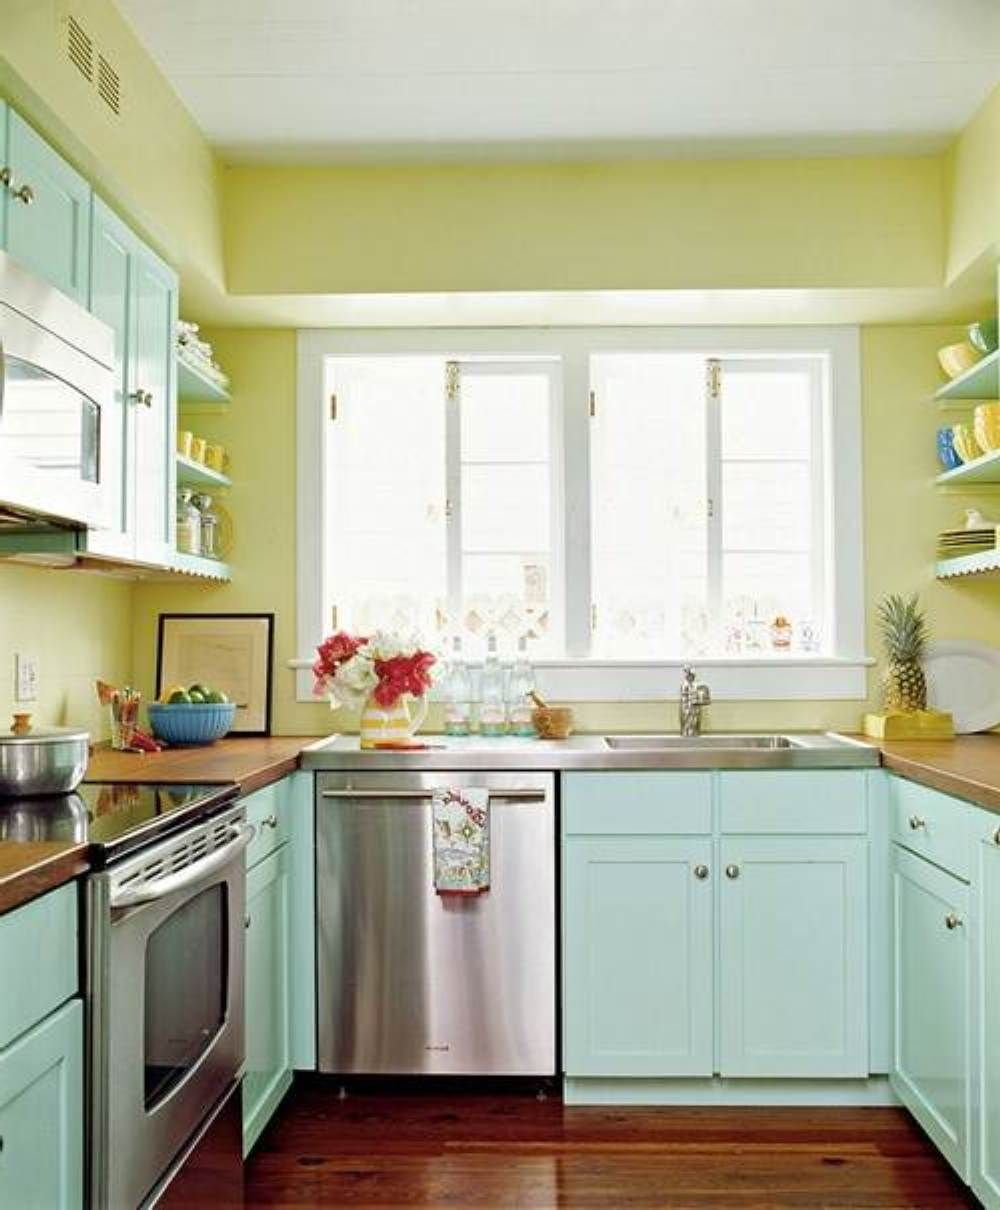 Kitchen Design Wall Colors small kitchen design ideas | wall colors, kitchens and walls